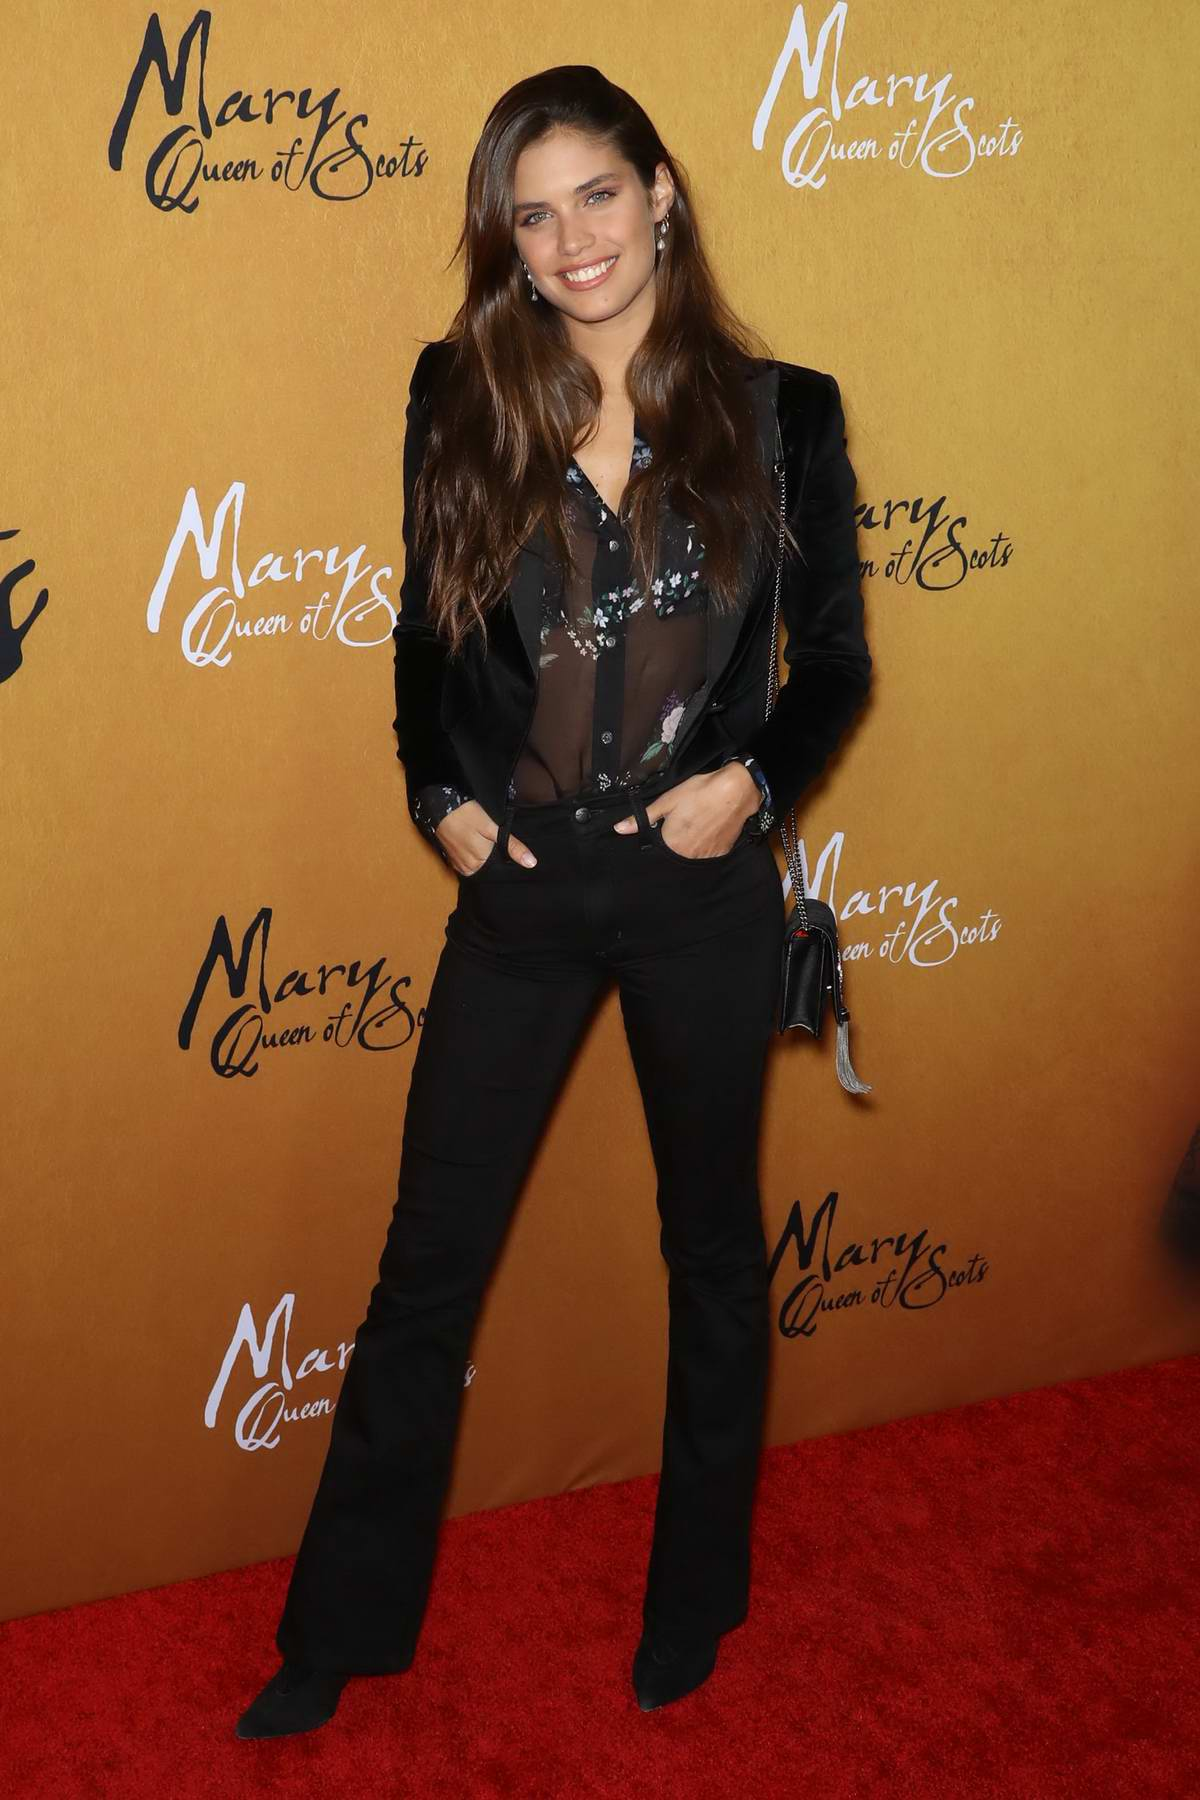 Sara Sampaio attends 'Mary, Queen of Scots' film premiere in New York City